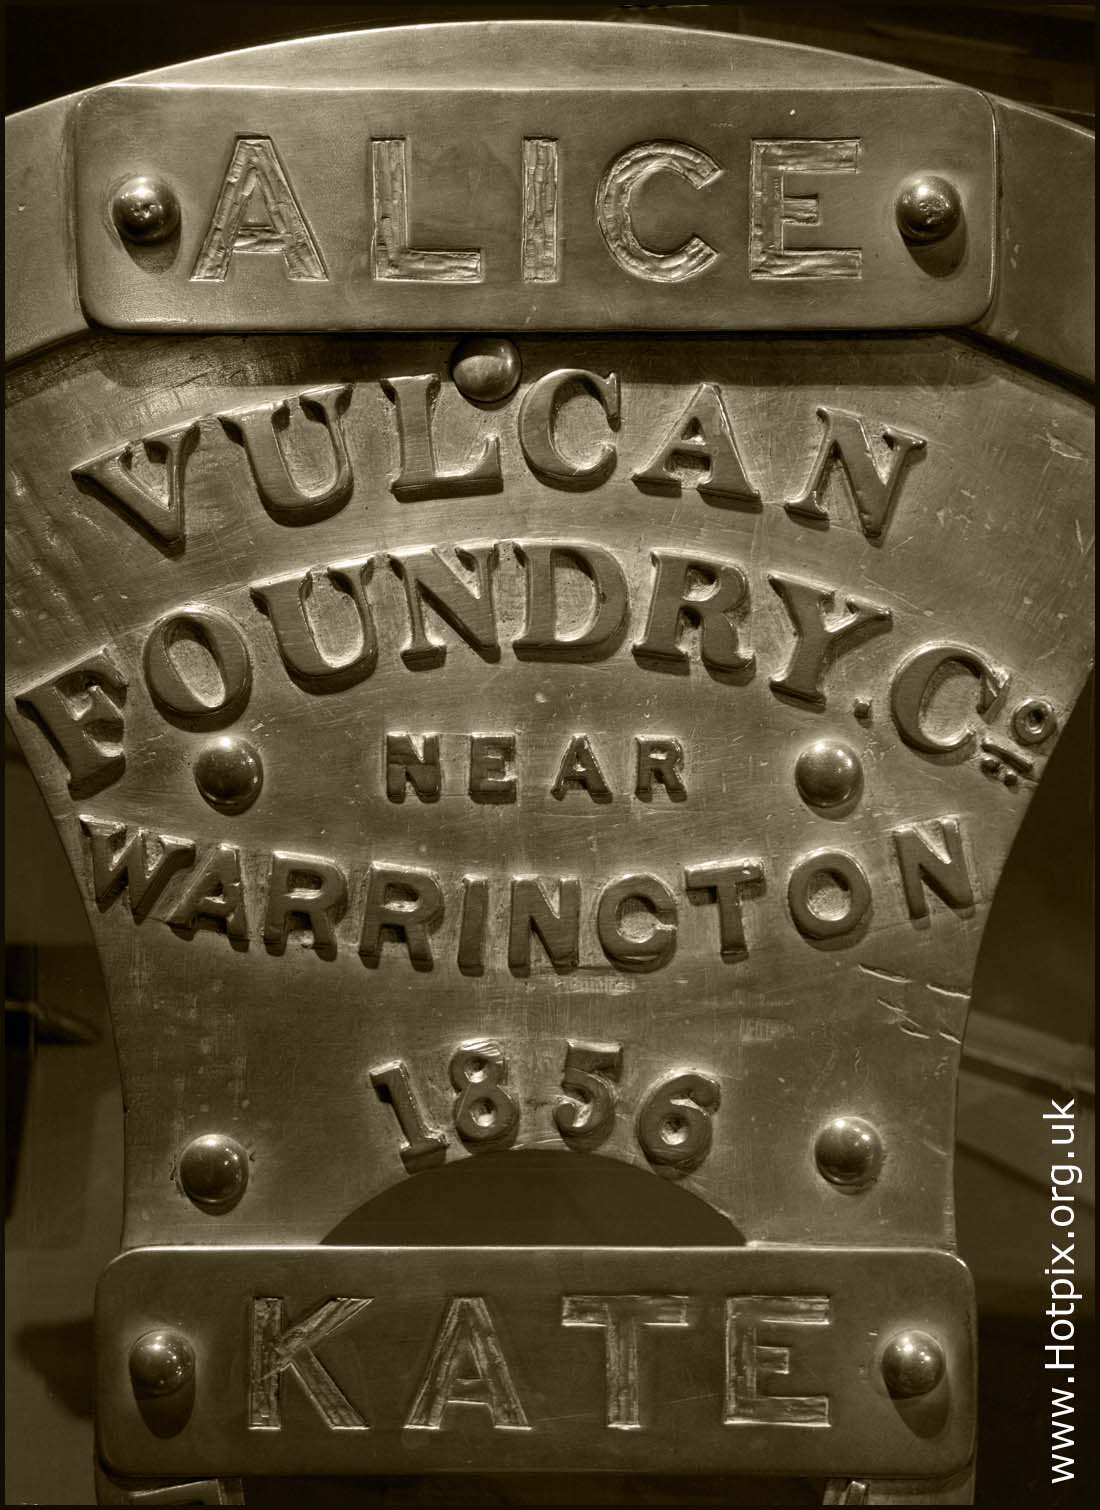 365project 365 project Brass Engine Plate; Alice Kate,Vulcan Foundary 1856 warrington cheshire factory loco locomotives UK england steam engines,old,stuff,sex,sexy,hotpix!